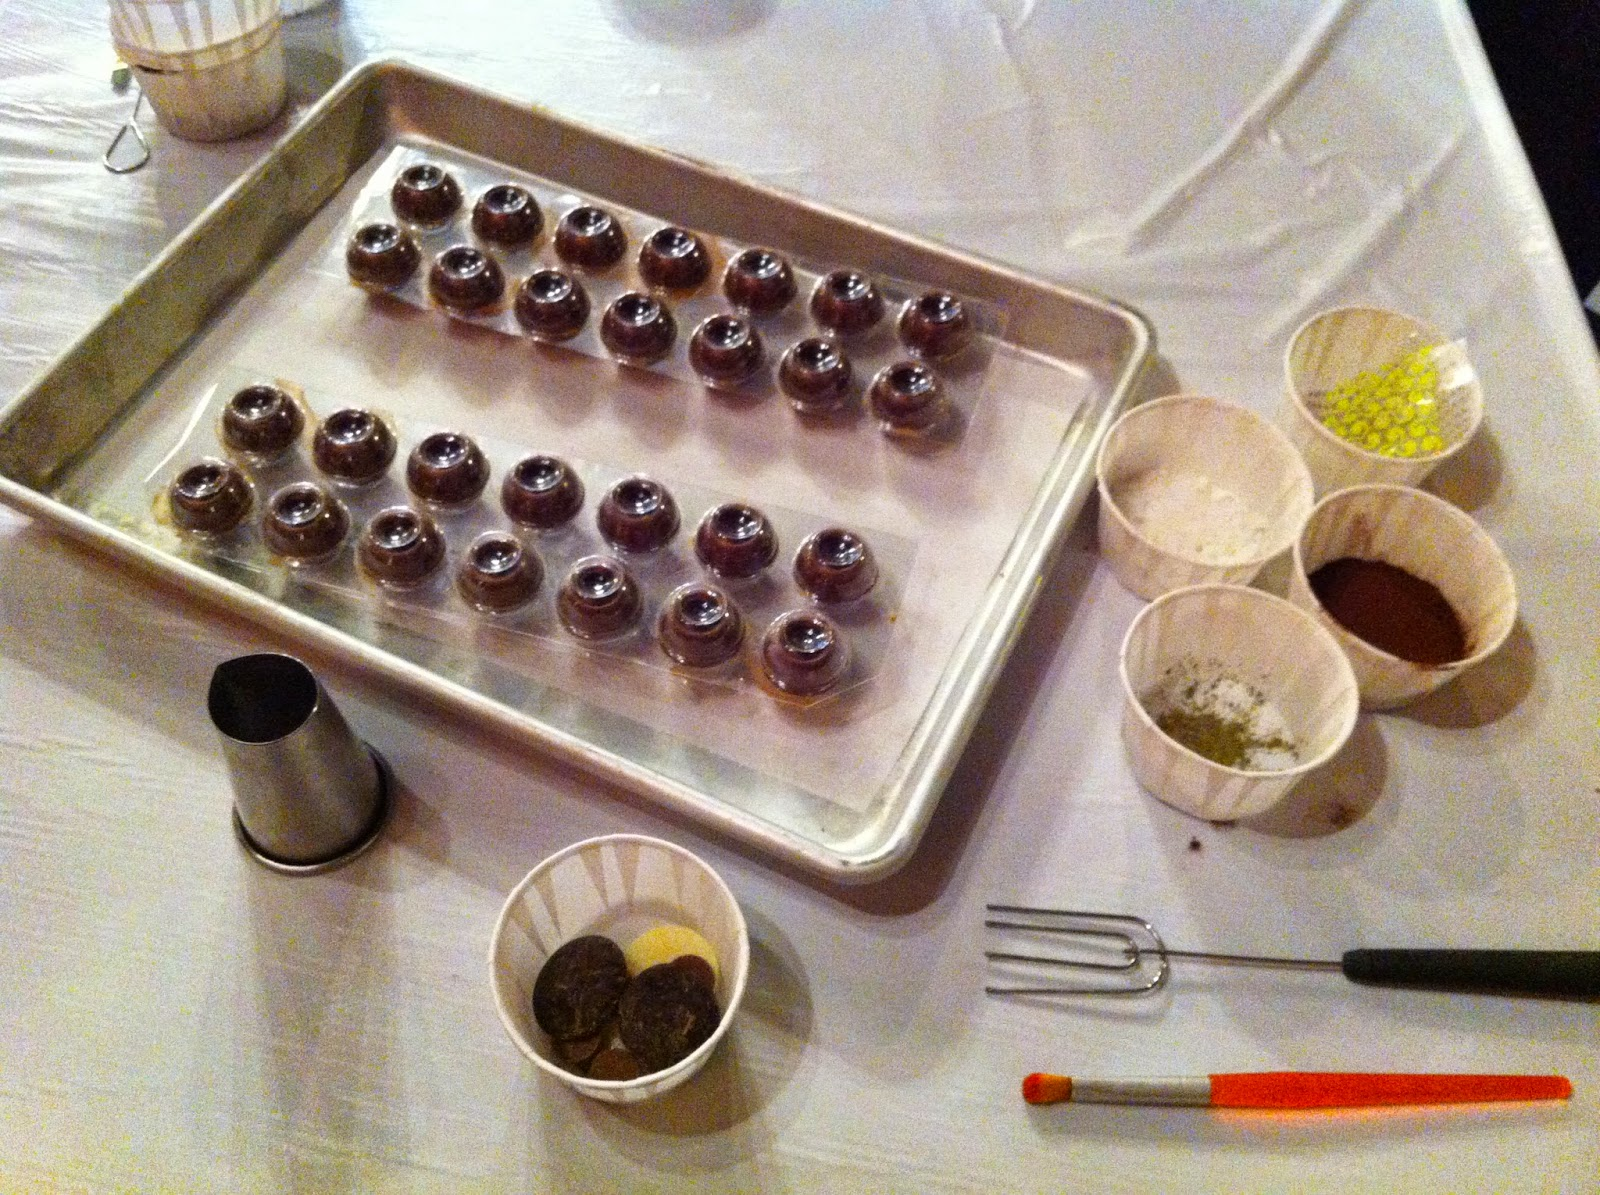 Livin' Life With Style : Chocolate Tales Truffle Making